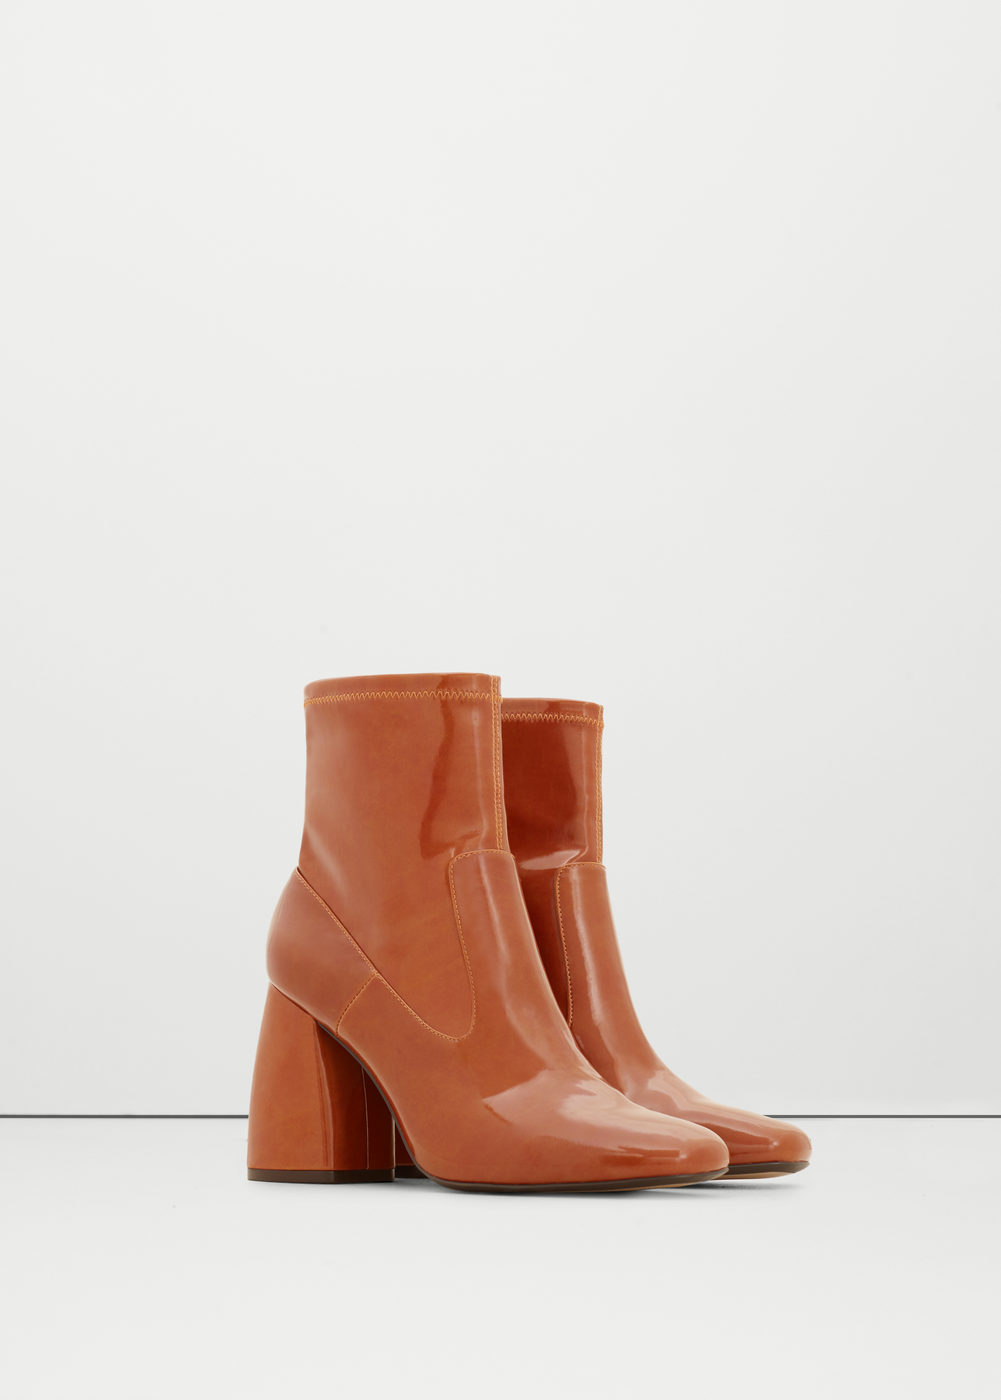 8 Boots to Buy via DNAMAG